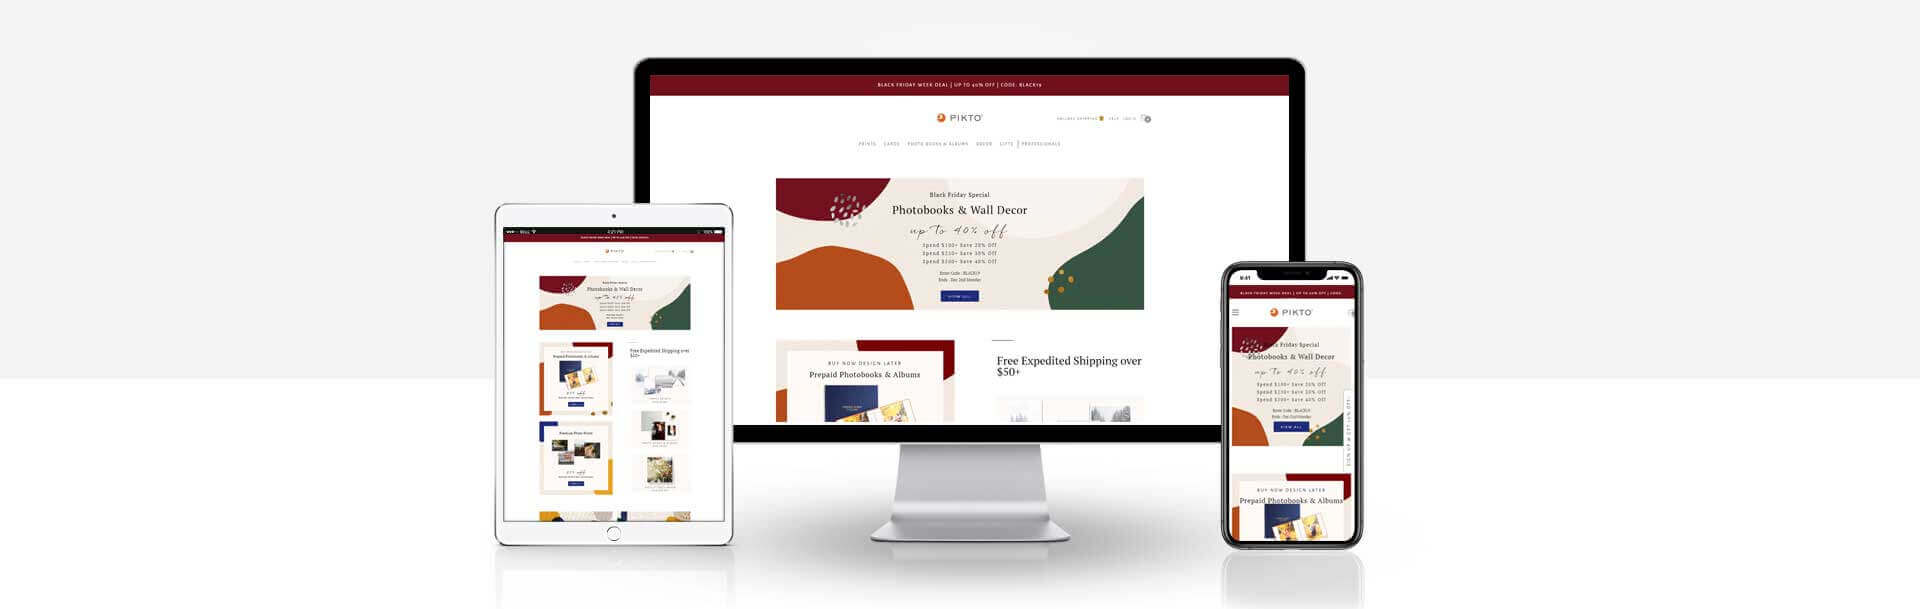 Magento online Photo lab and printing website